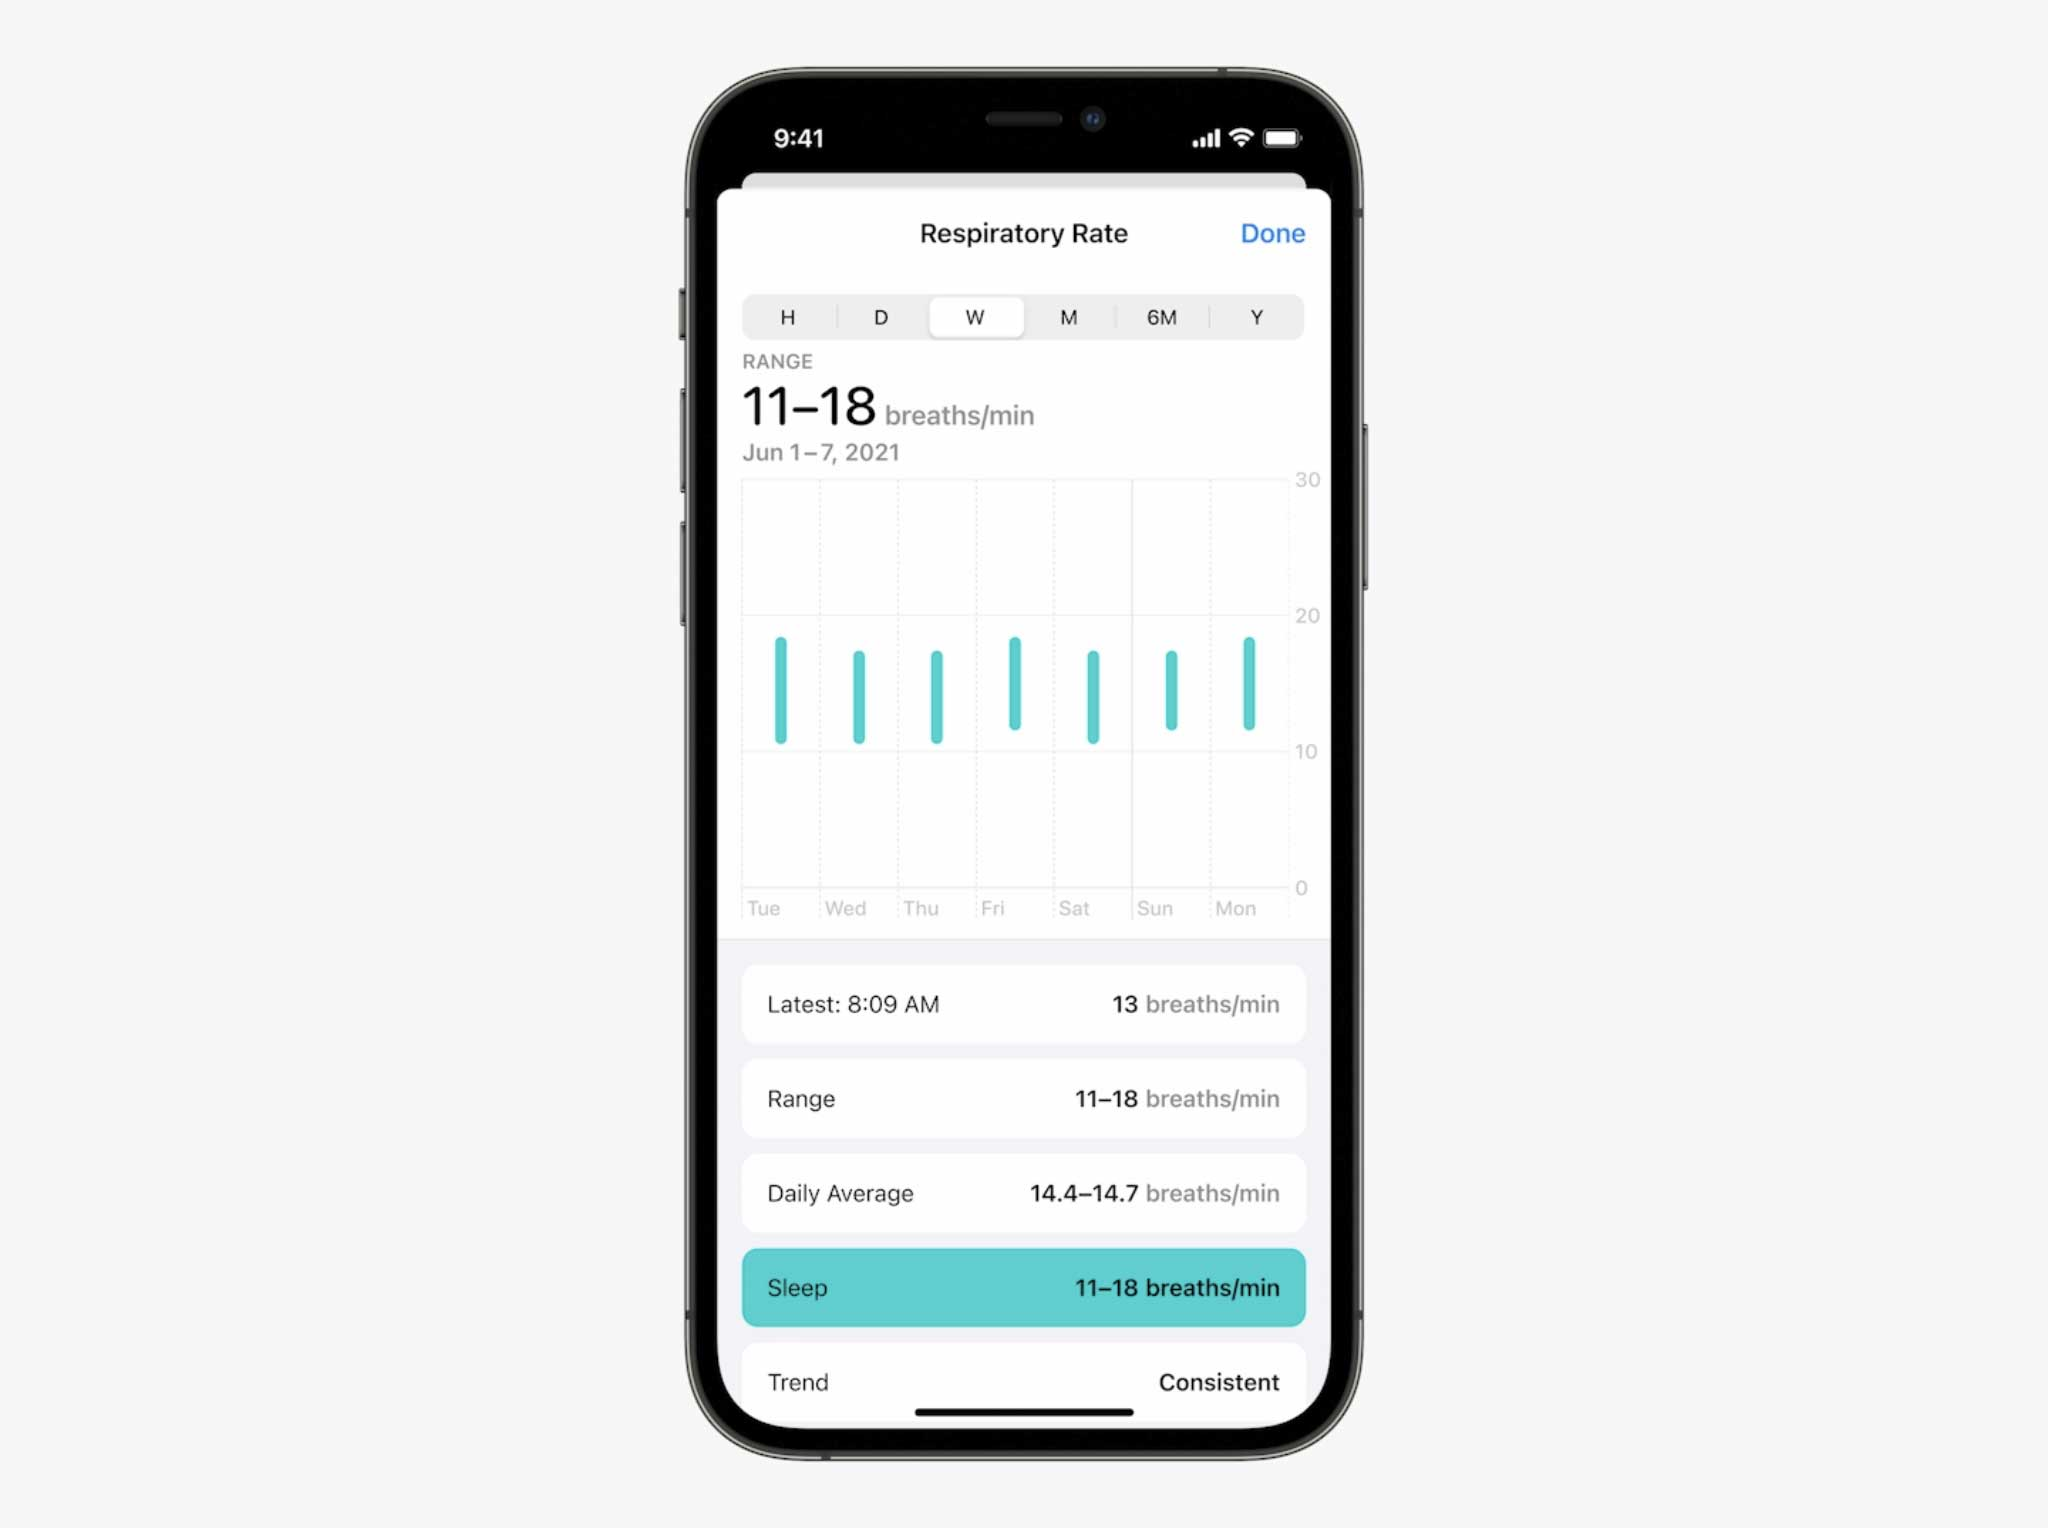 Apple Watch can now track your Respiratory Rate.